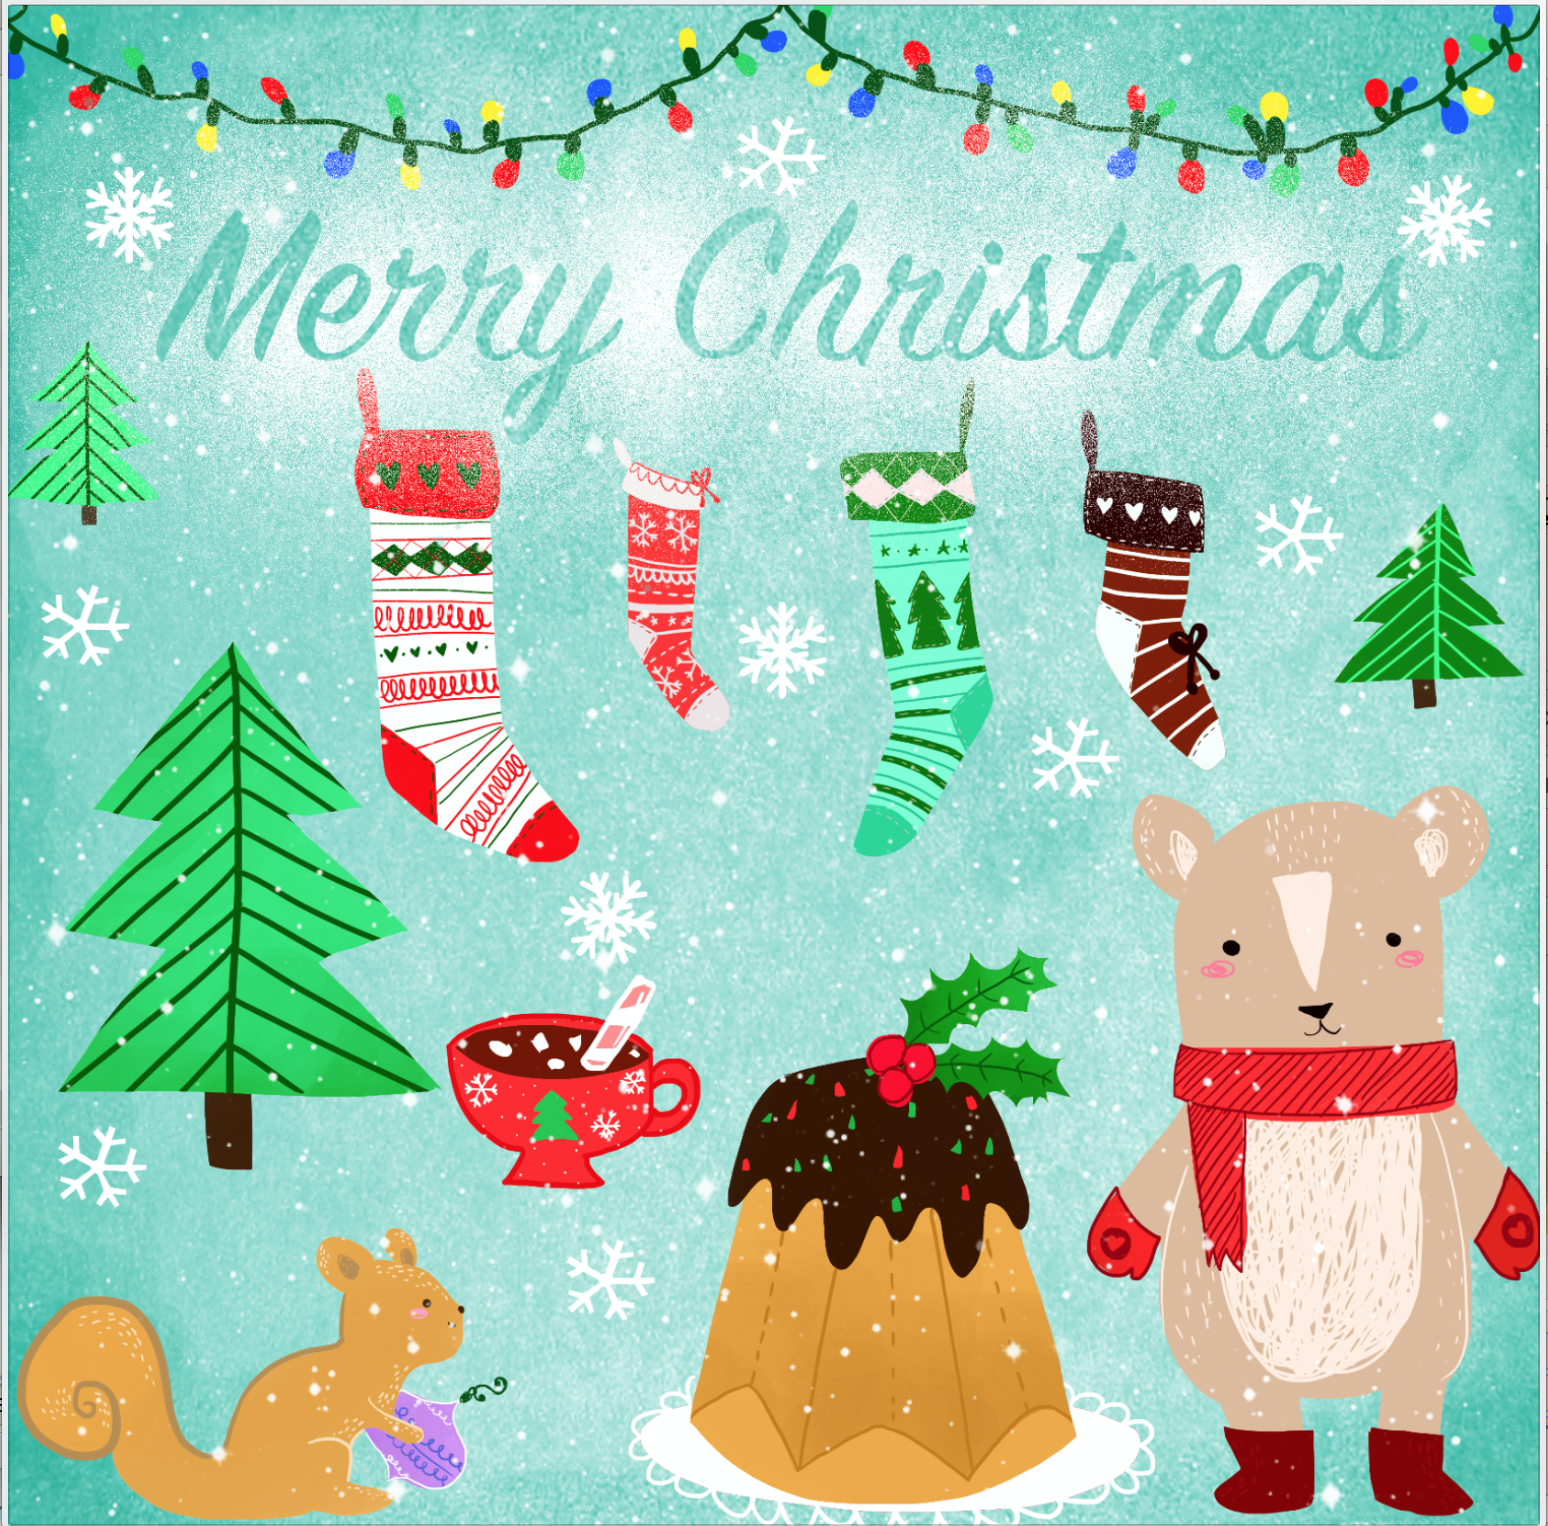 A Beautifully Cheerful Christmas Card Design From Emanuela Mannello The